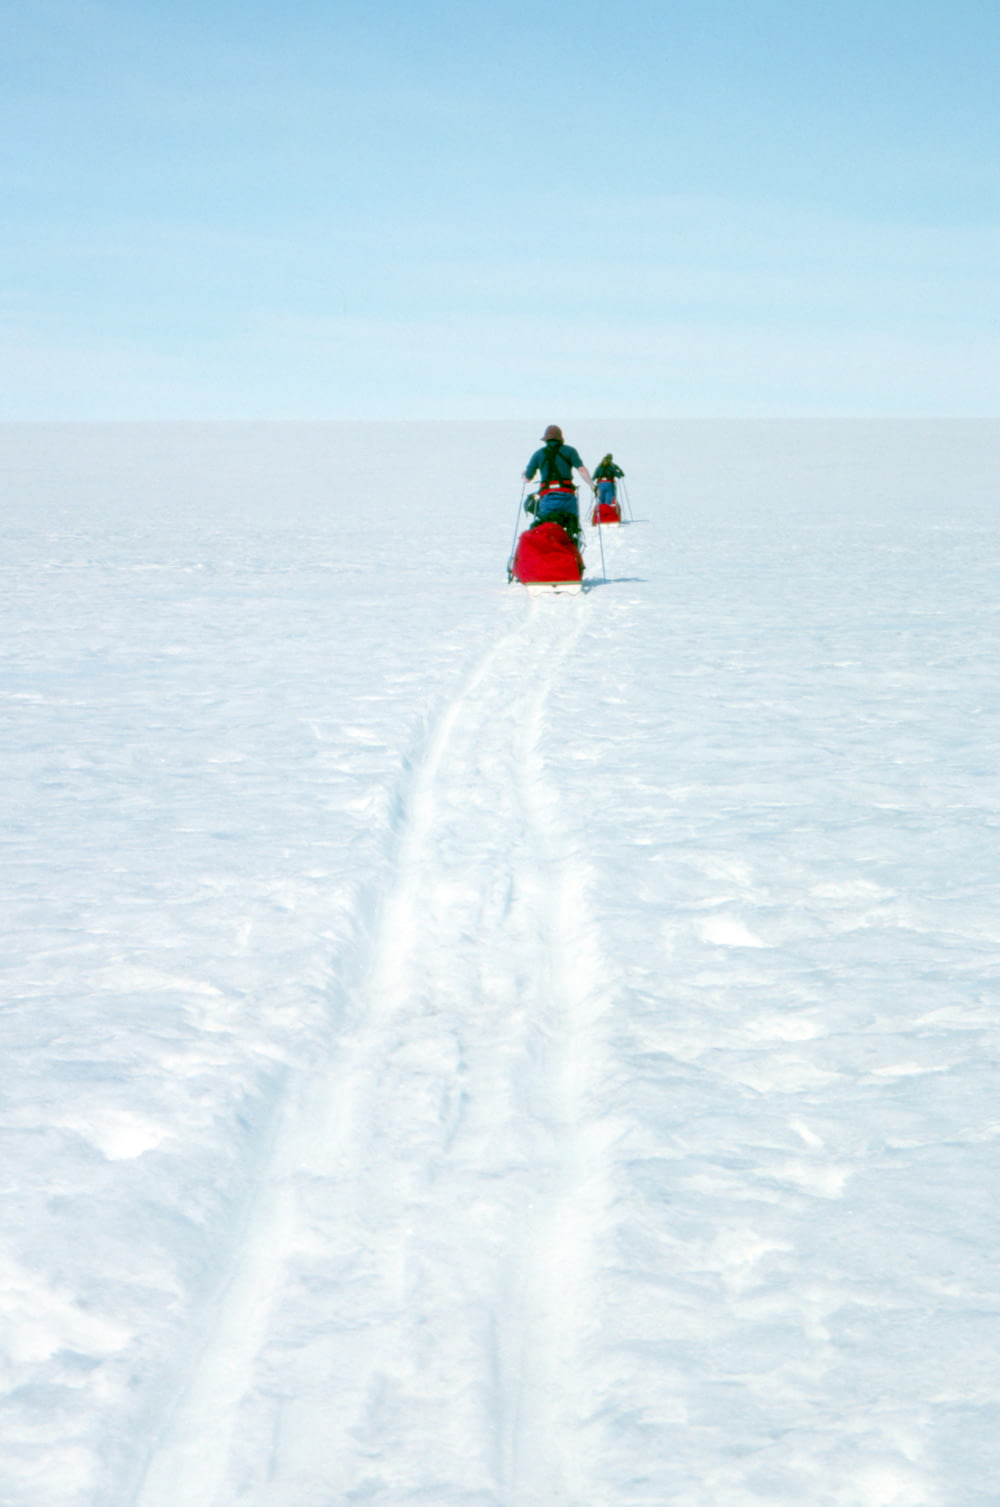 2 person in red and black jacket riding on snow board during daytime